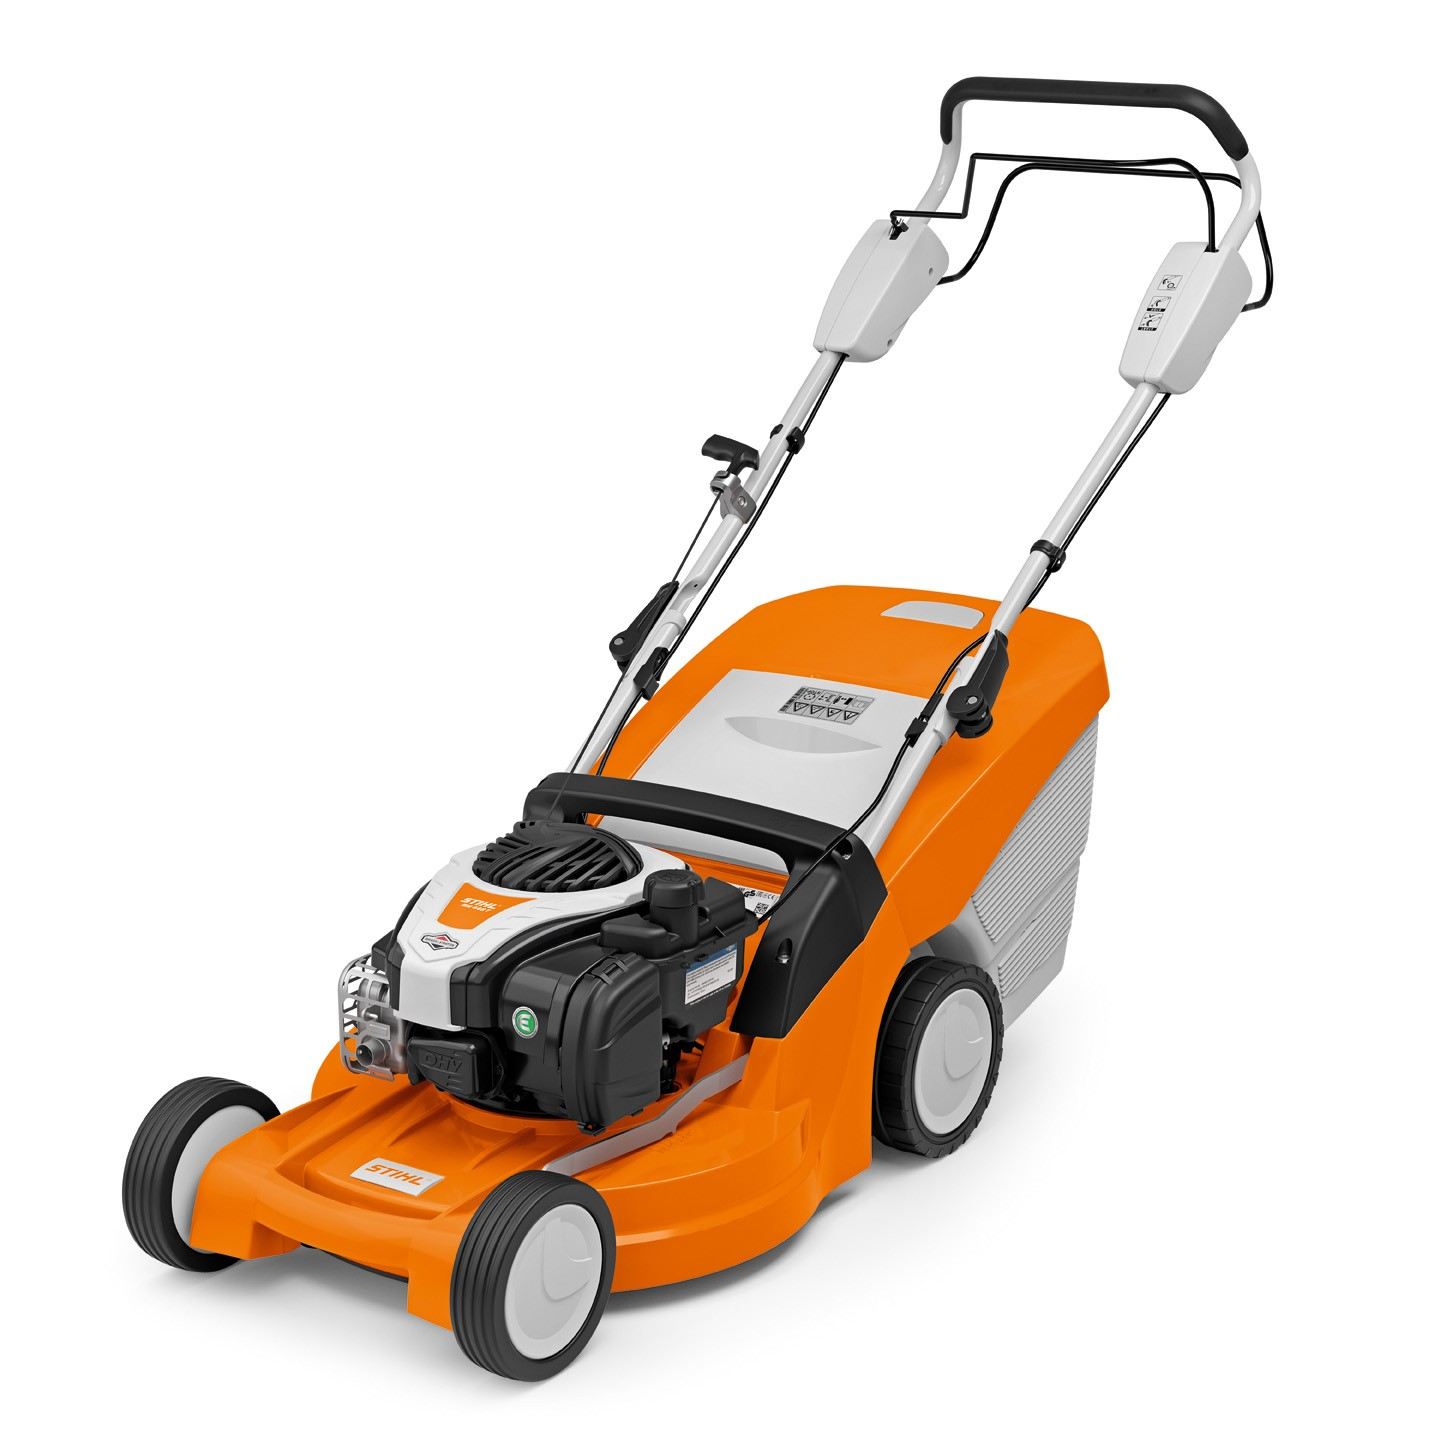 Viking MB 448 T lawn mower with a 46 cm